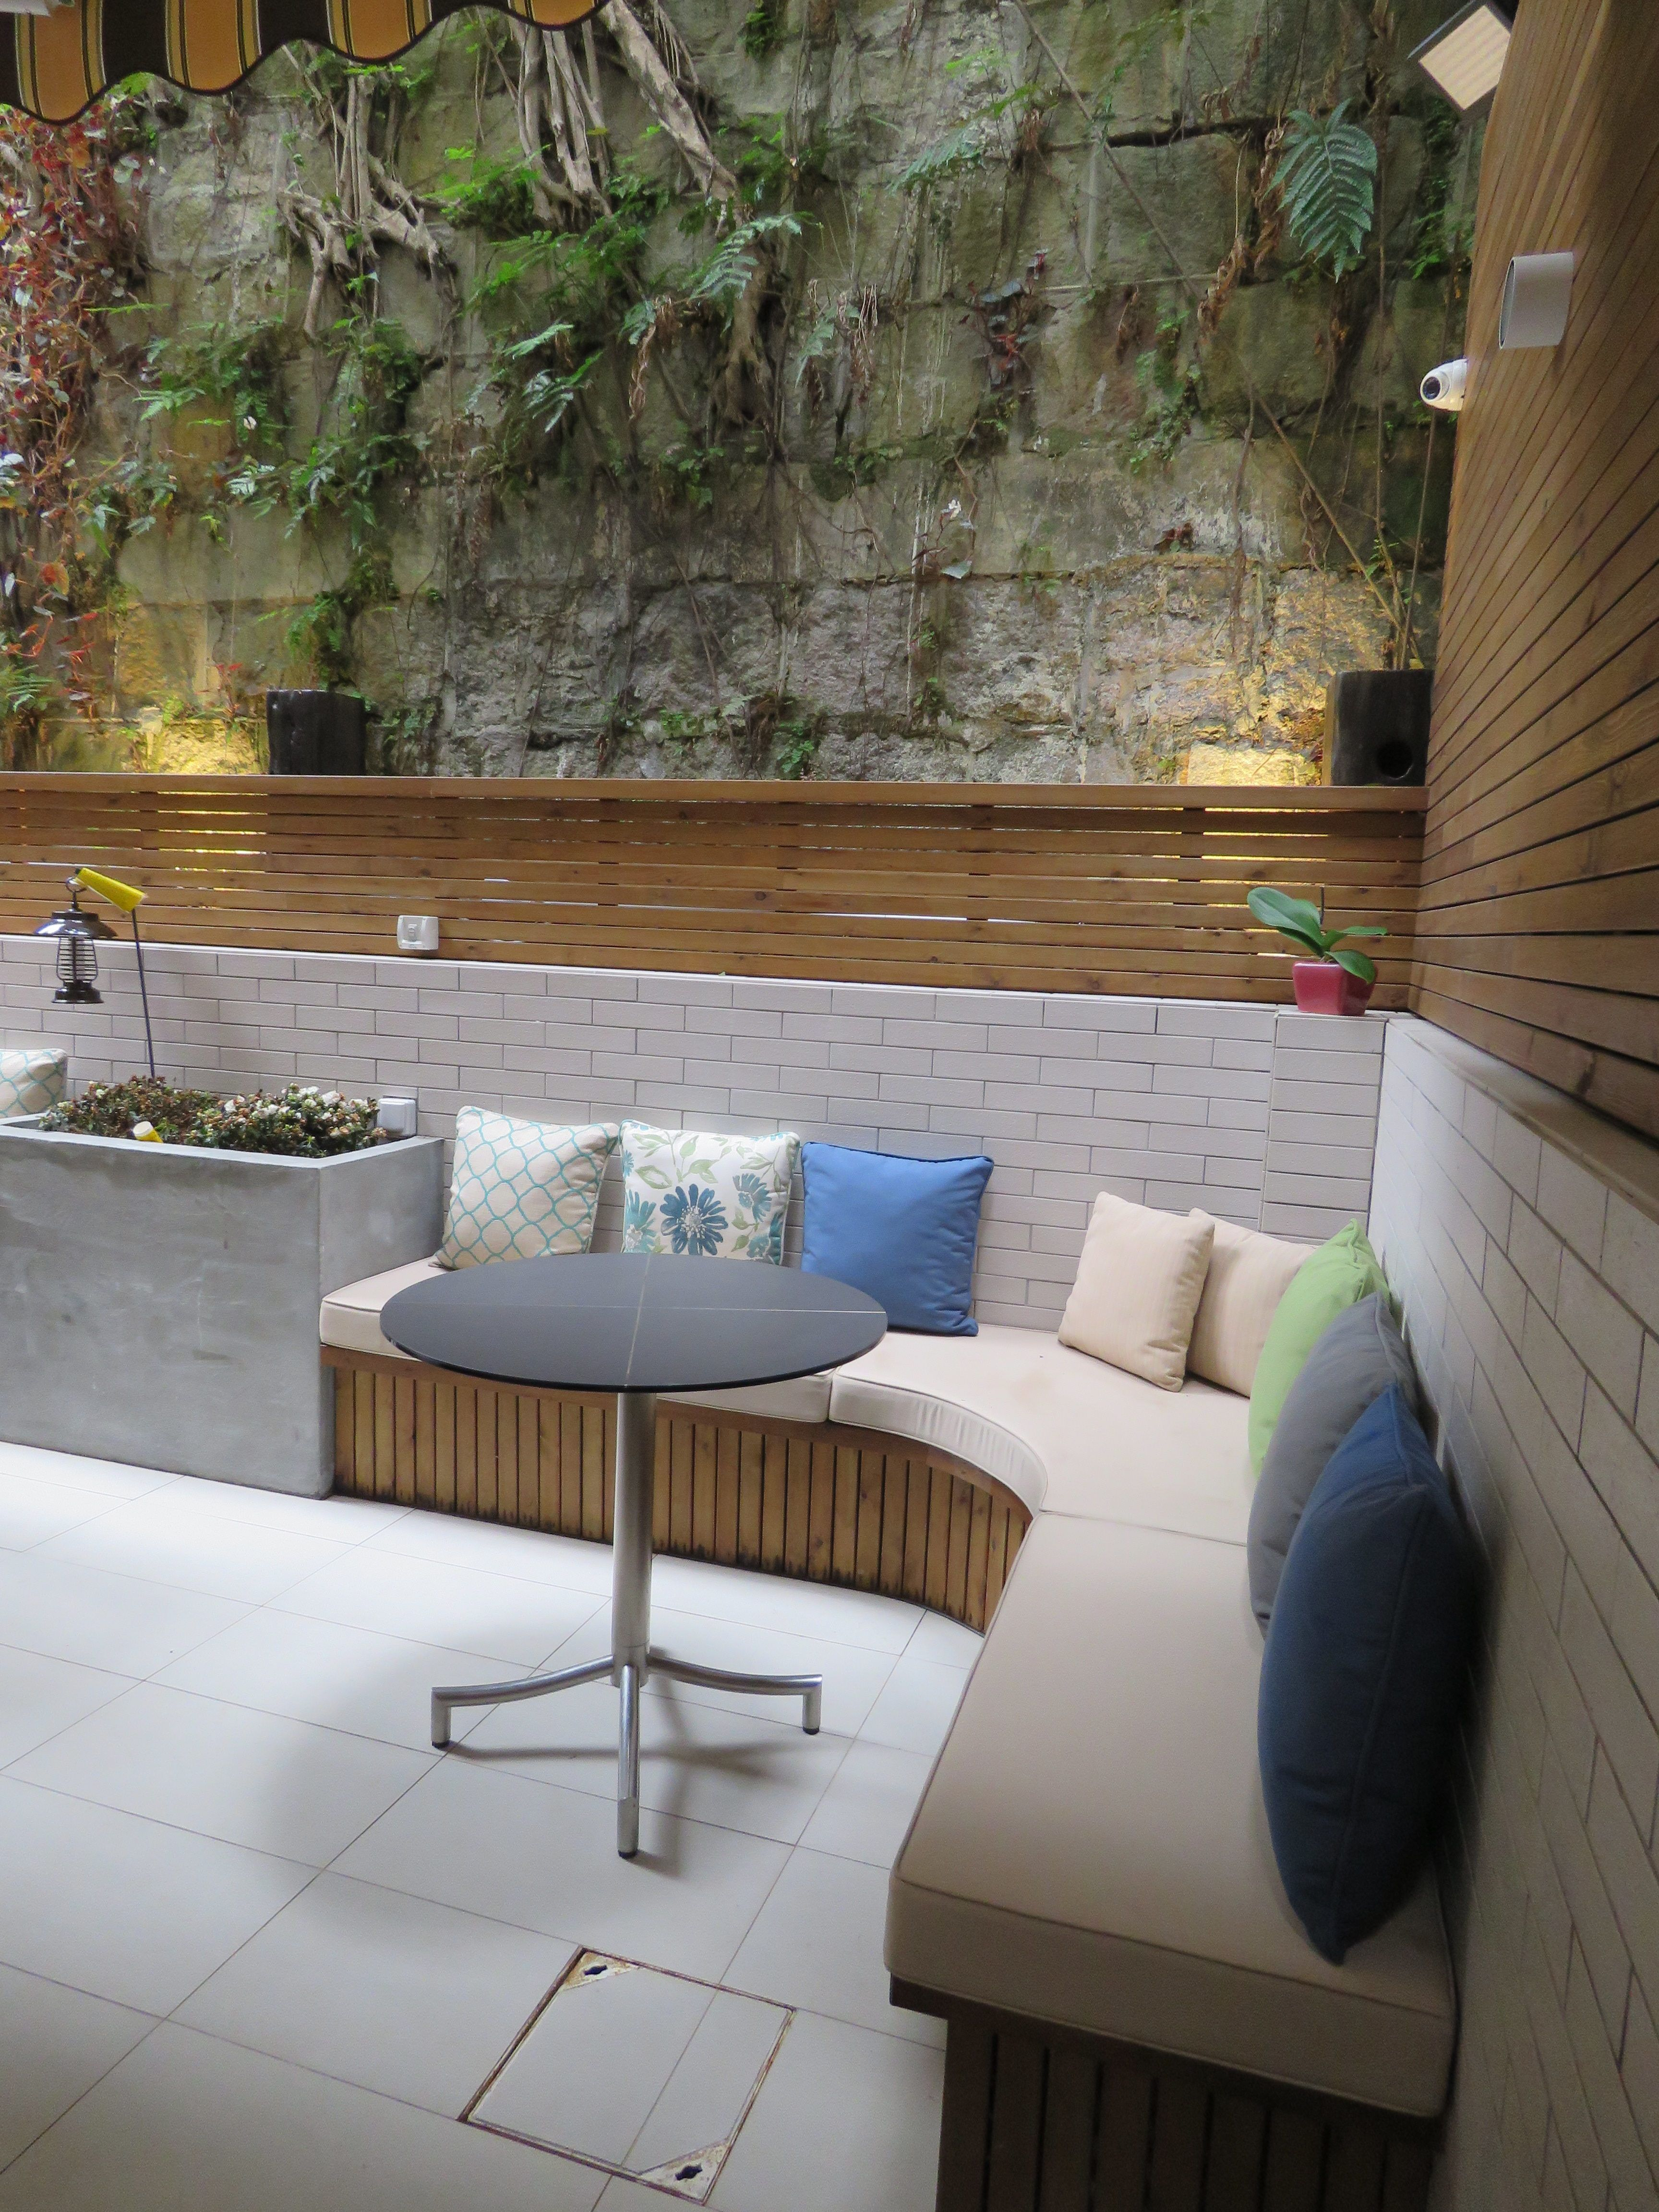 Delightful Outdoor Spaces That Smooth The Transition From Inside To Outside